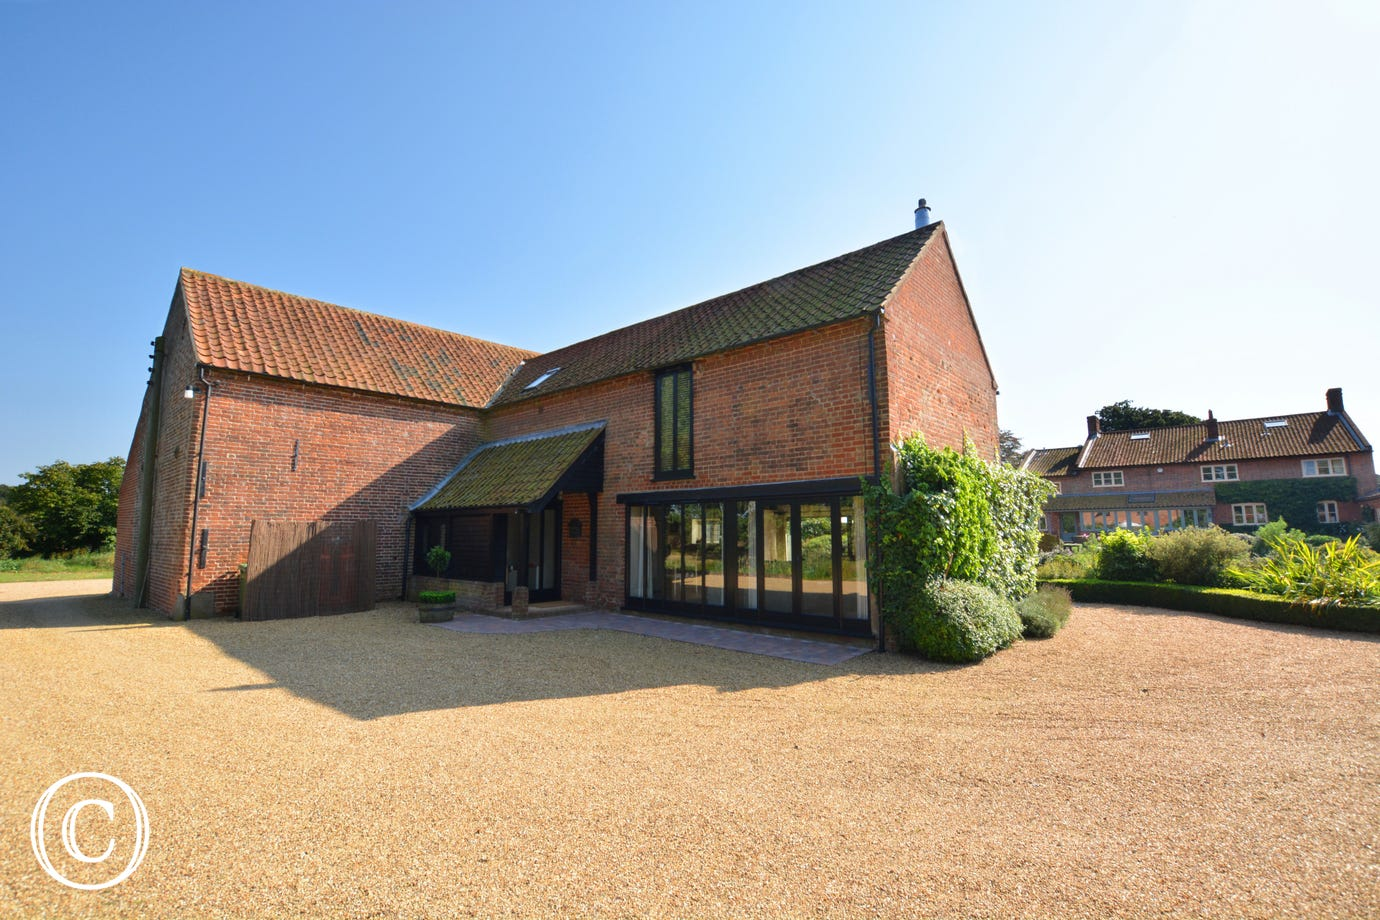 Exterior image of this delightful converted granary